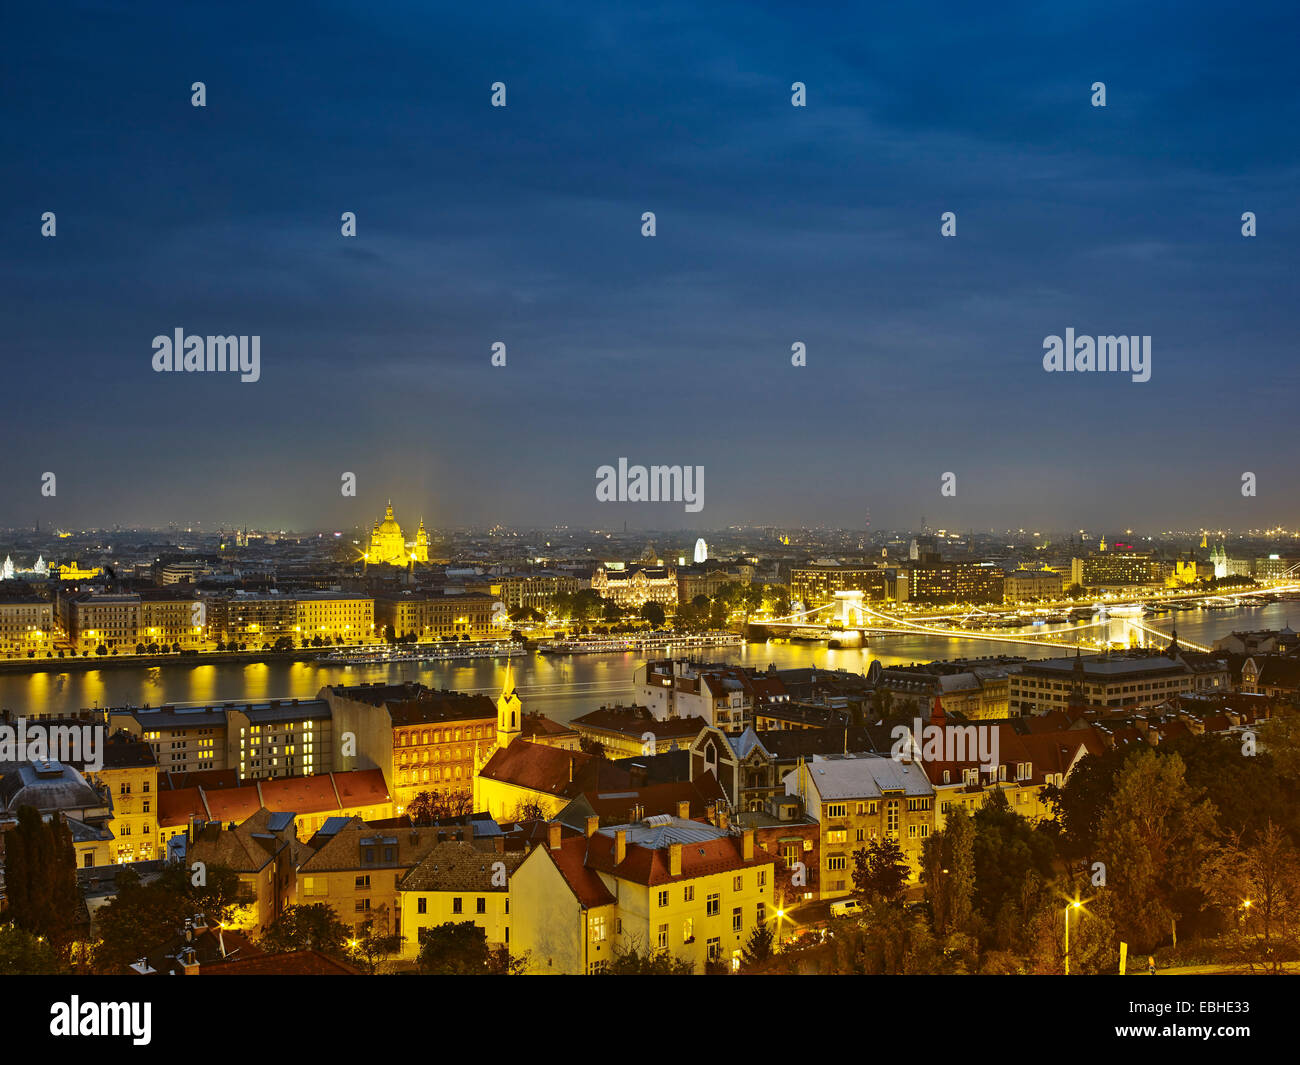 Skyline of Budapest from fisherman's bastion by night, Hungary - Stock Image